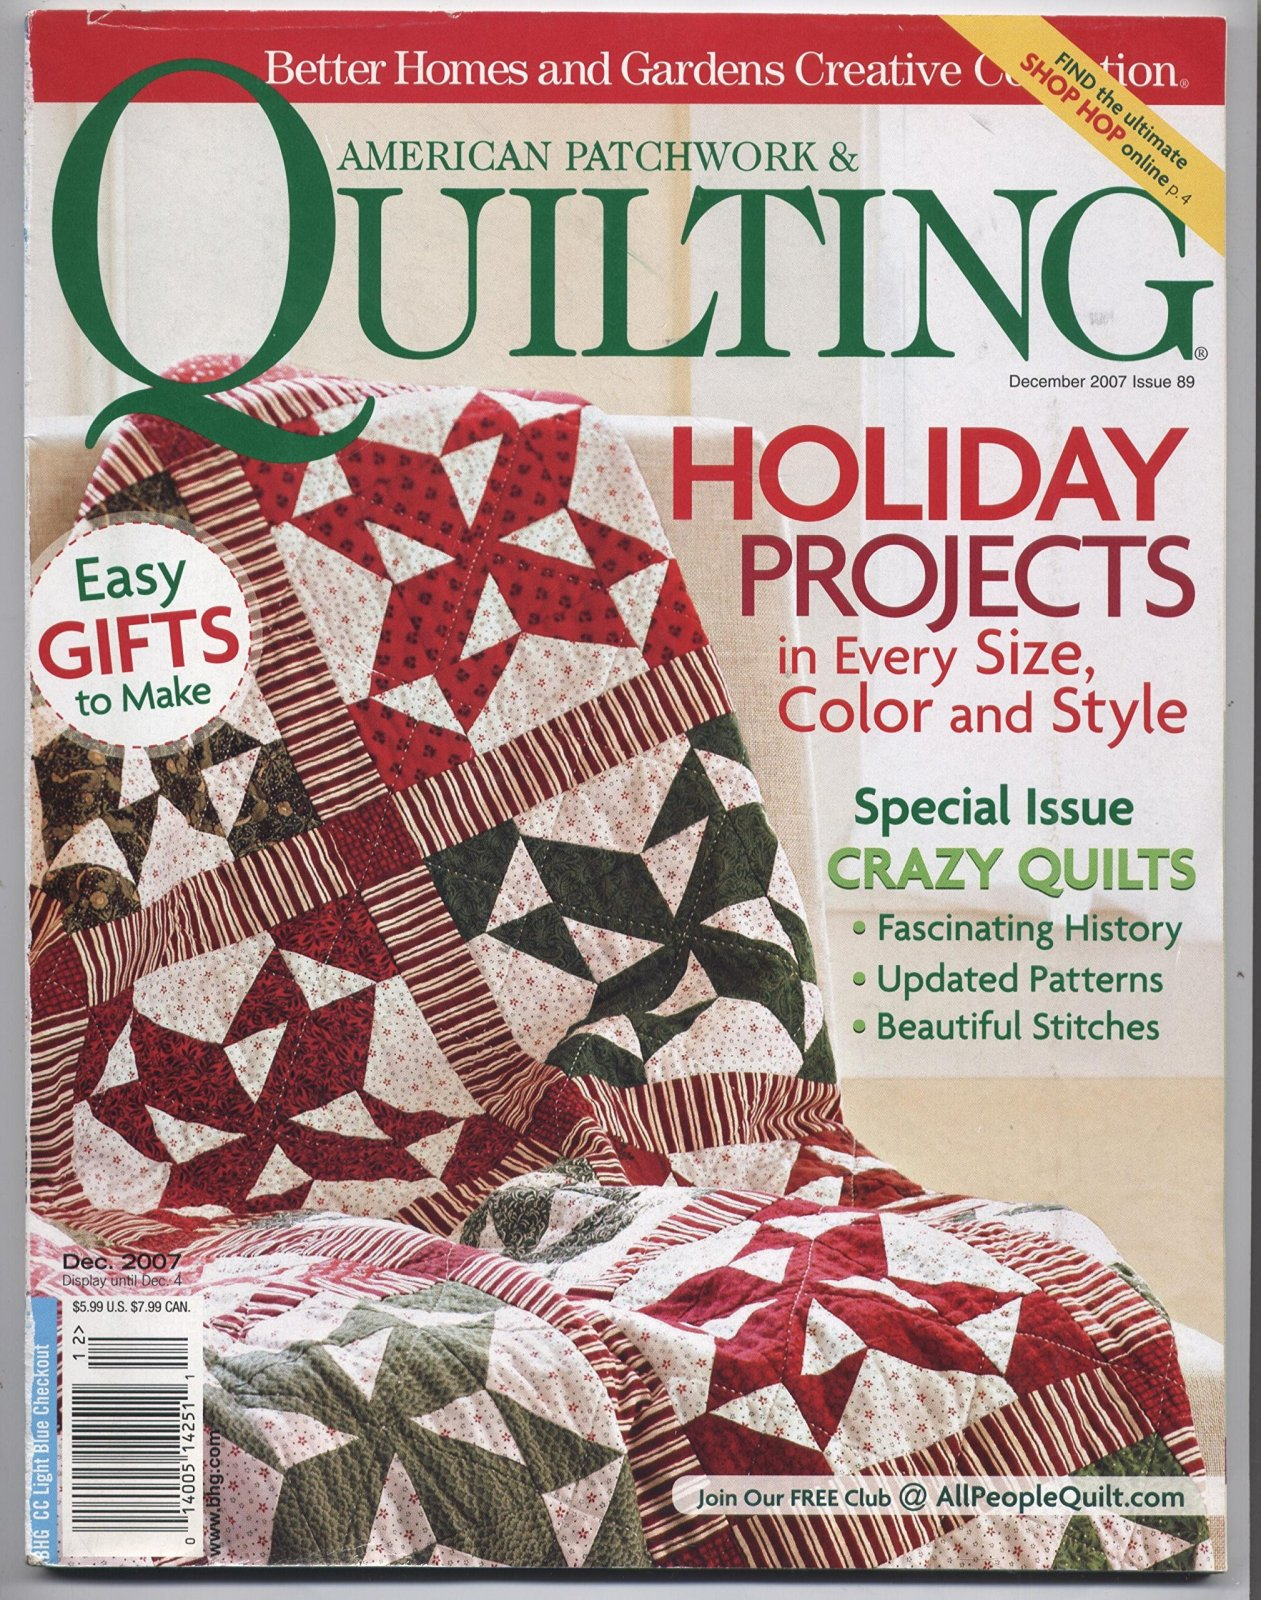 American Patchwork & Quilting December 2007 Issue 89